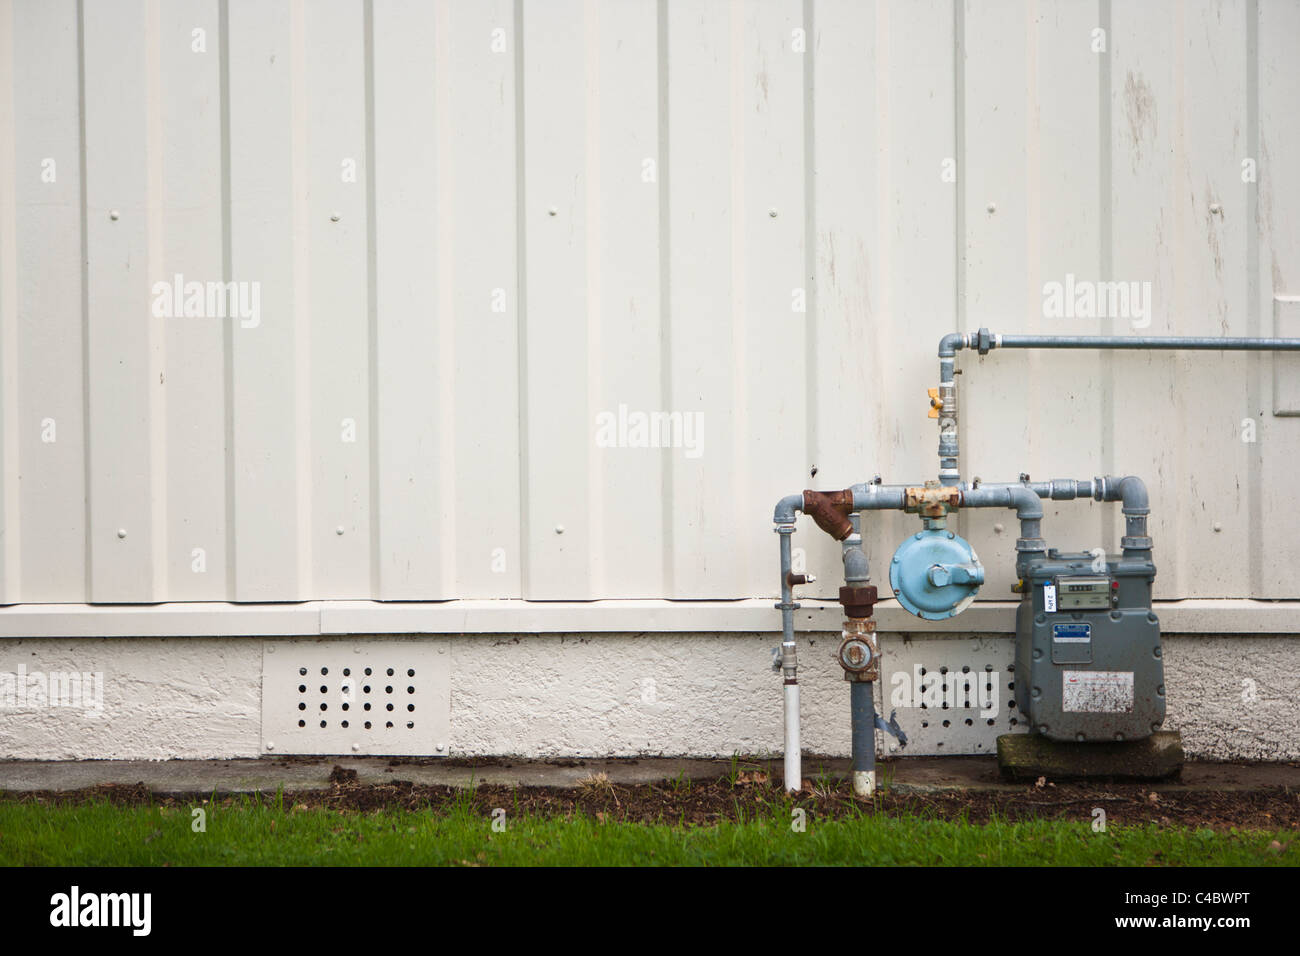 Gas meter, New Zealand. Identifying logos removed. - Stock Image